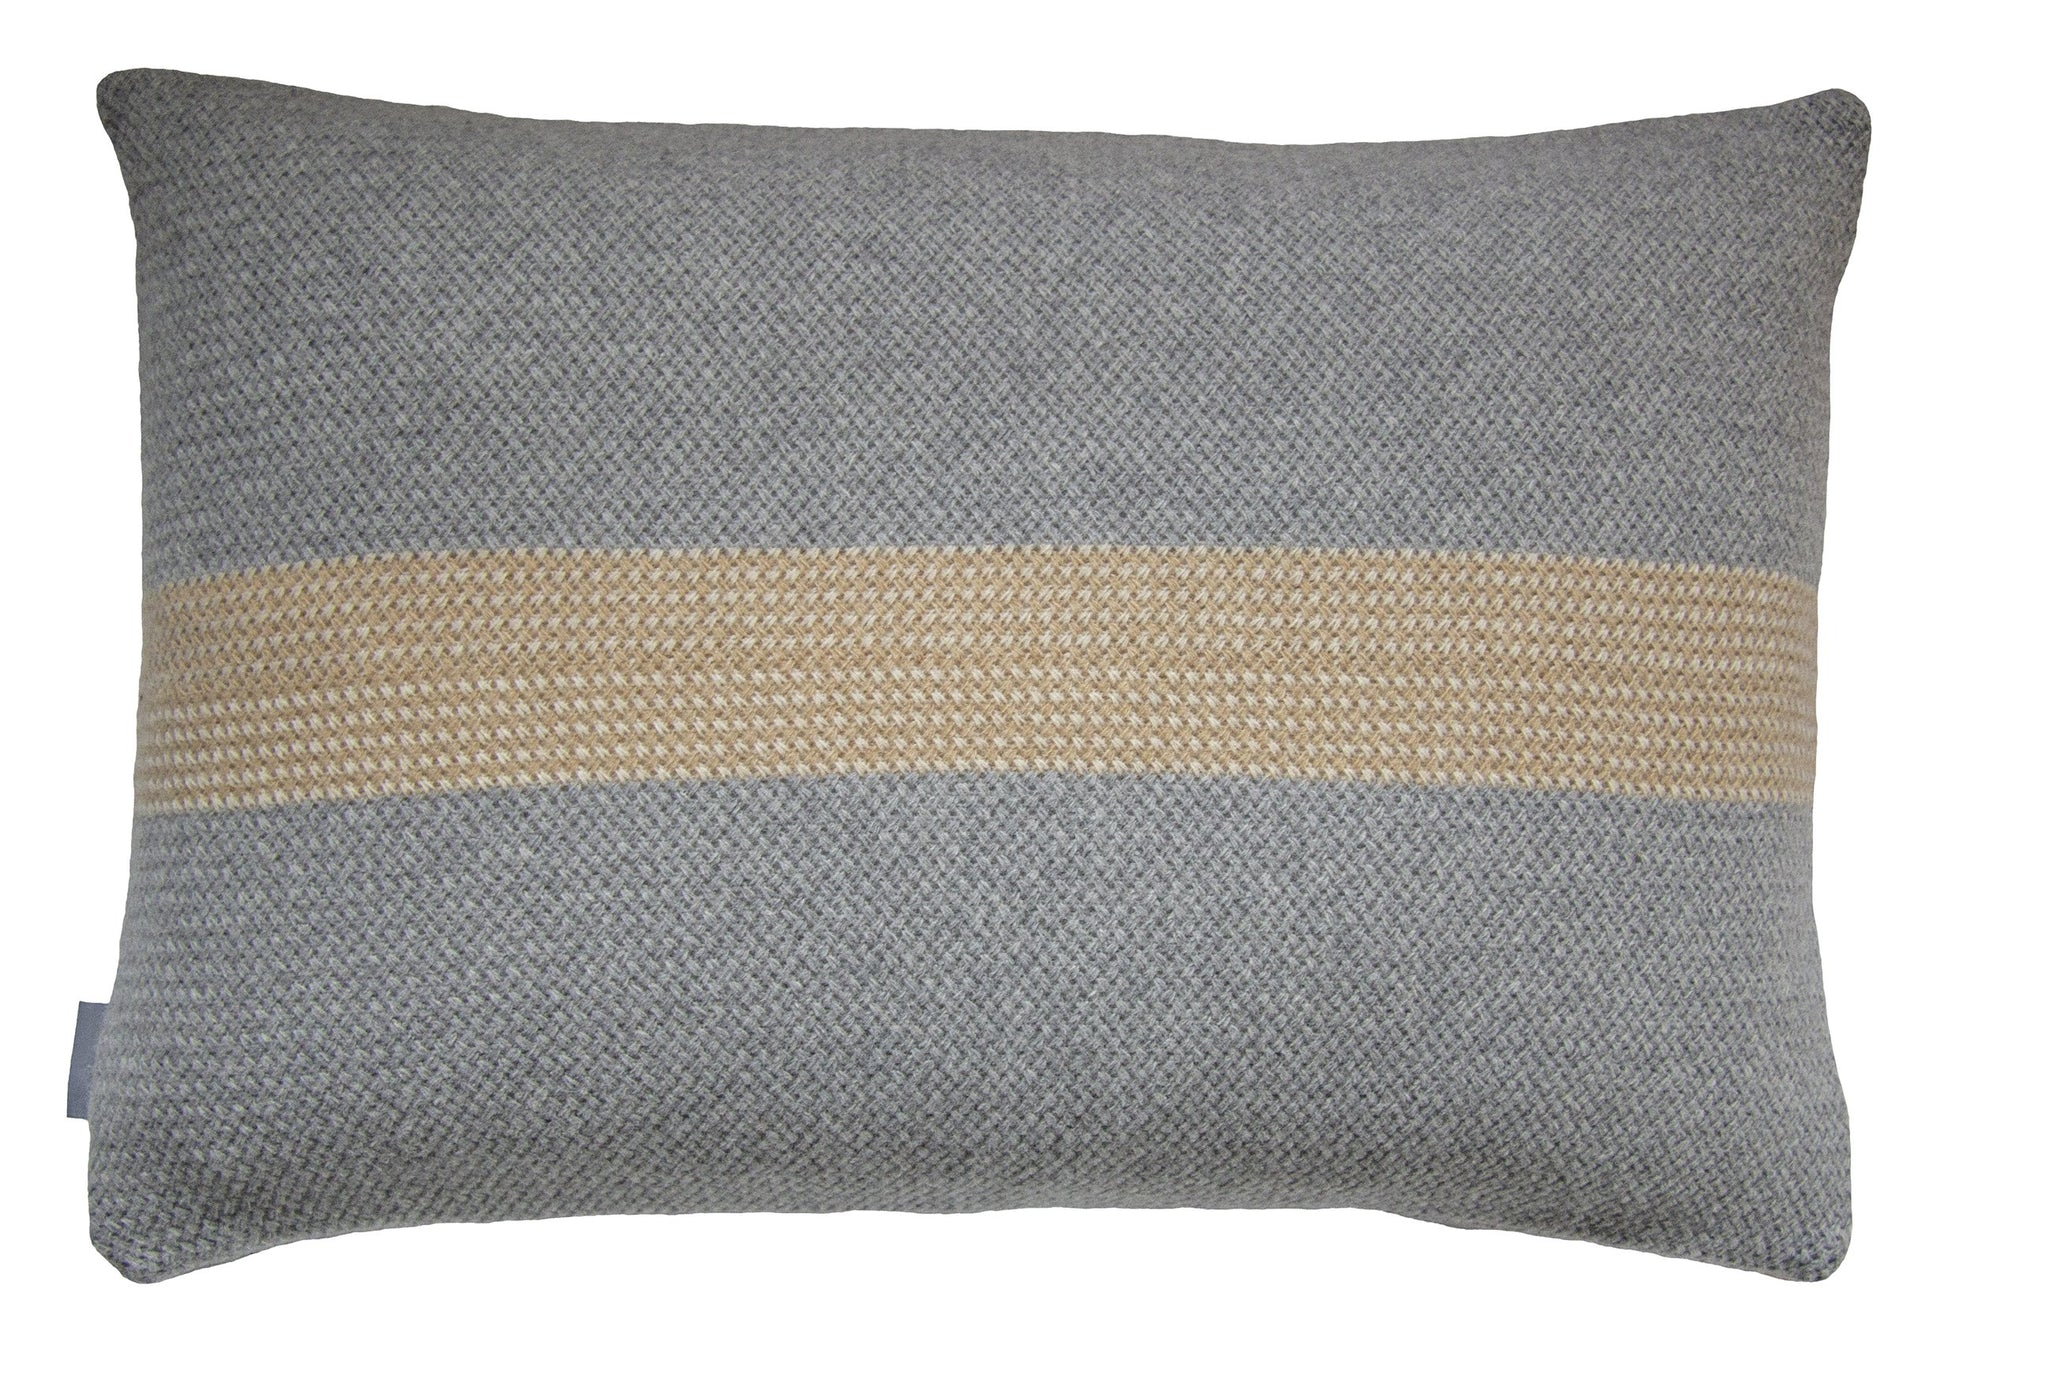 ANNI cushion, beige